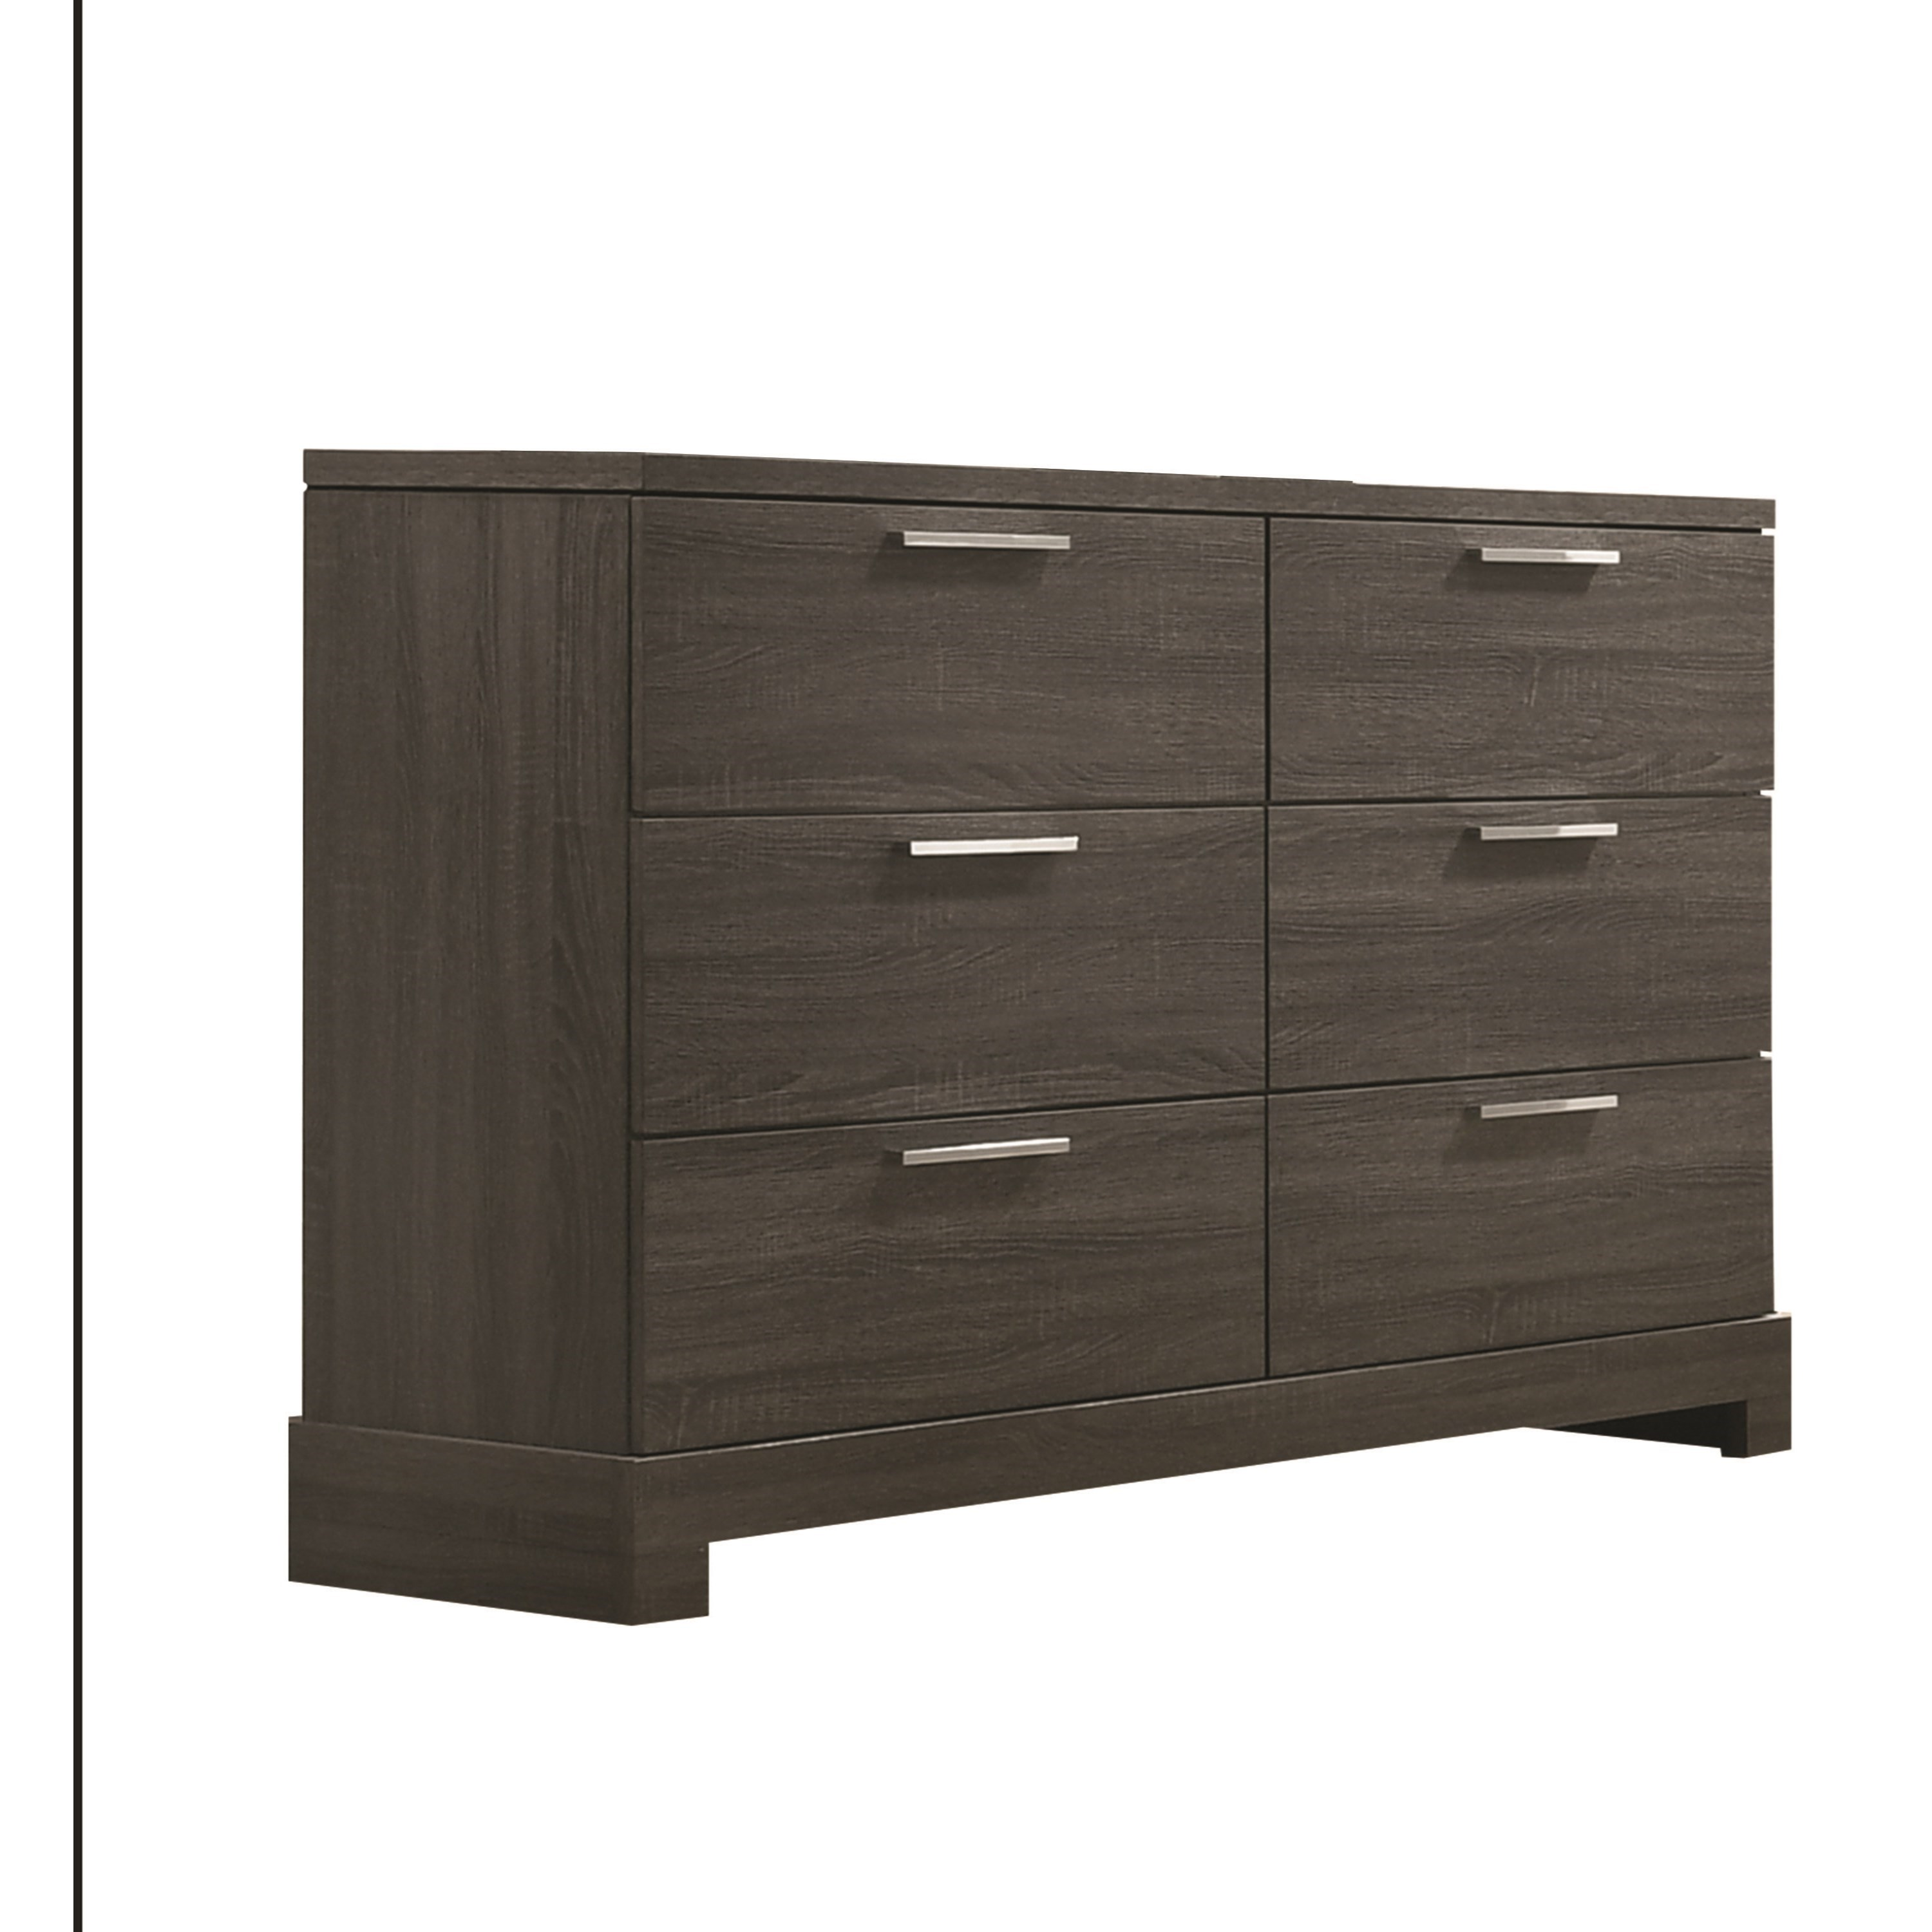 Lantha Dresser by Acme Furniture at Carolina Direct